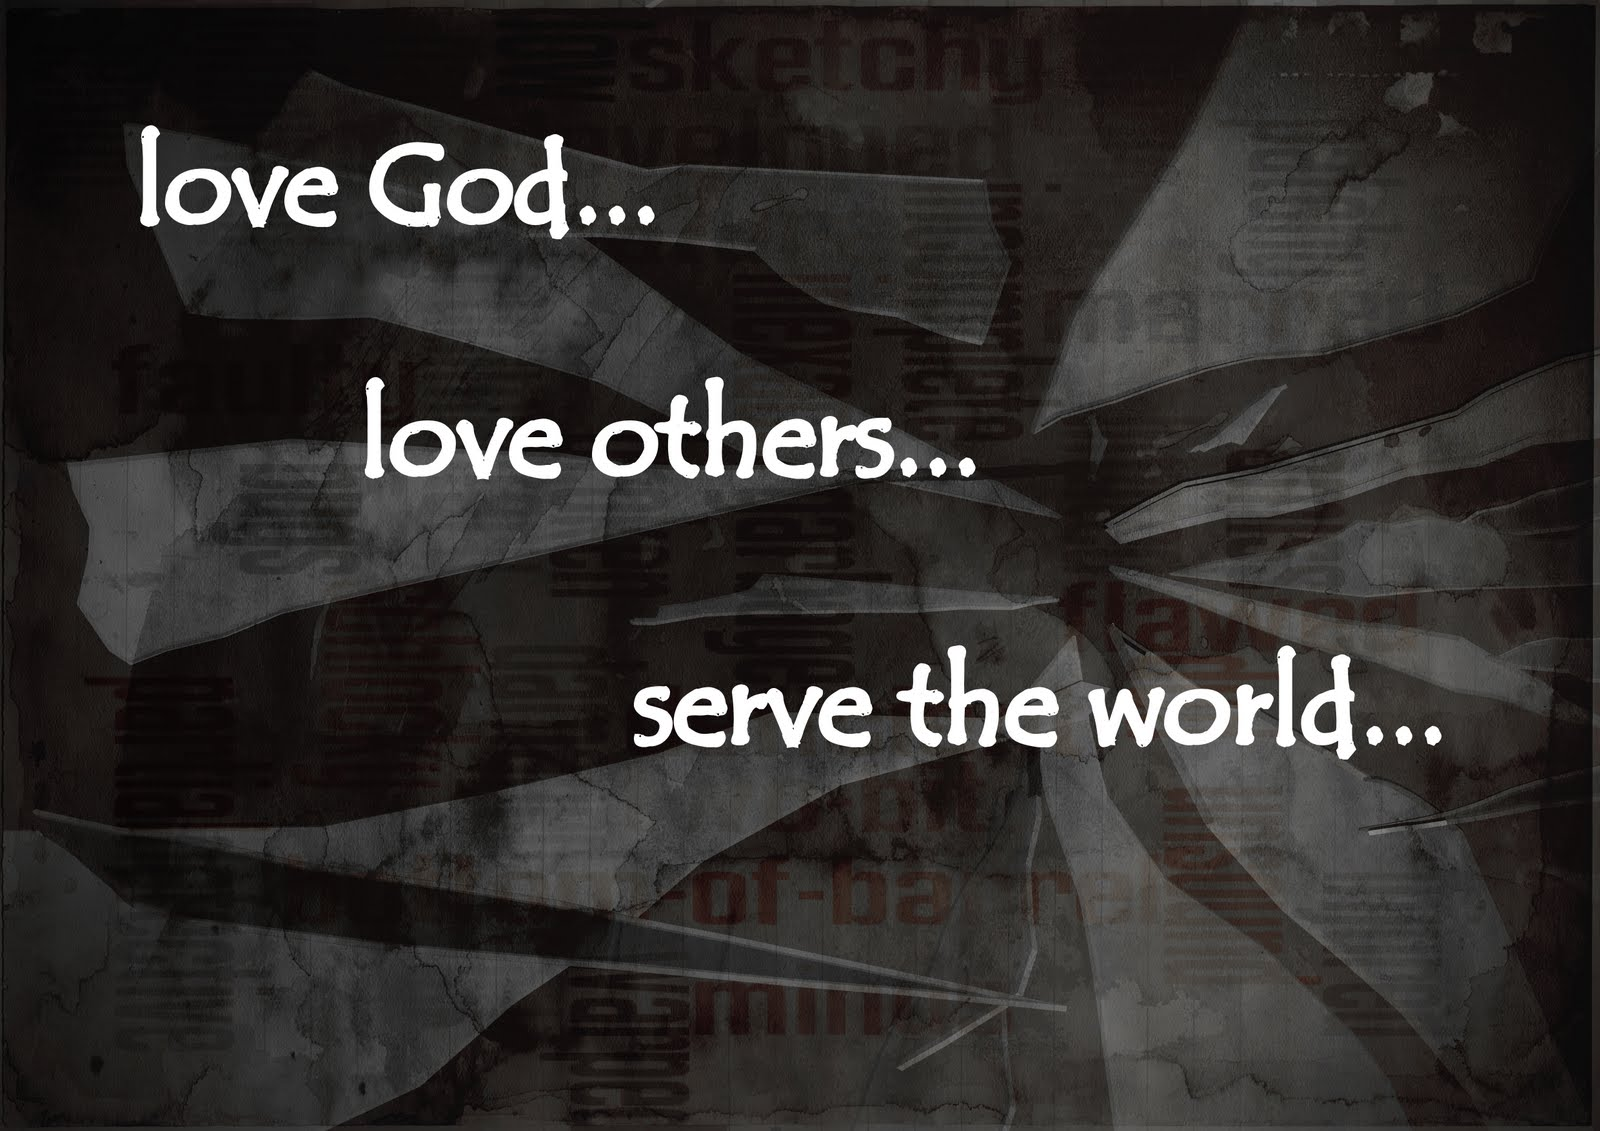 God Is Love Desktop Wallpaper : God is Love Desktop Wallpaper - WallpaperSafari